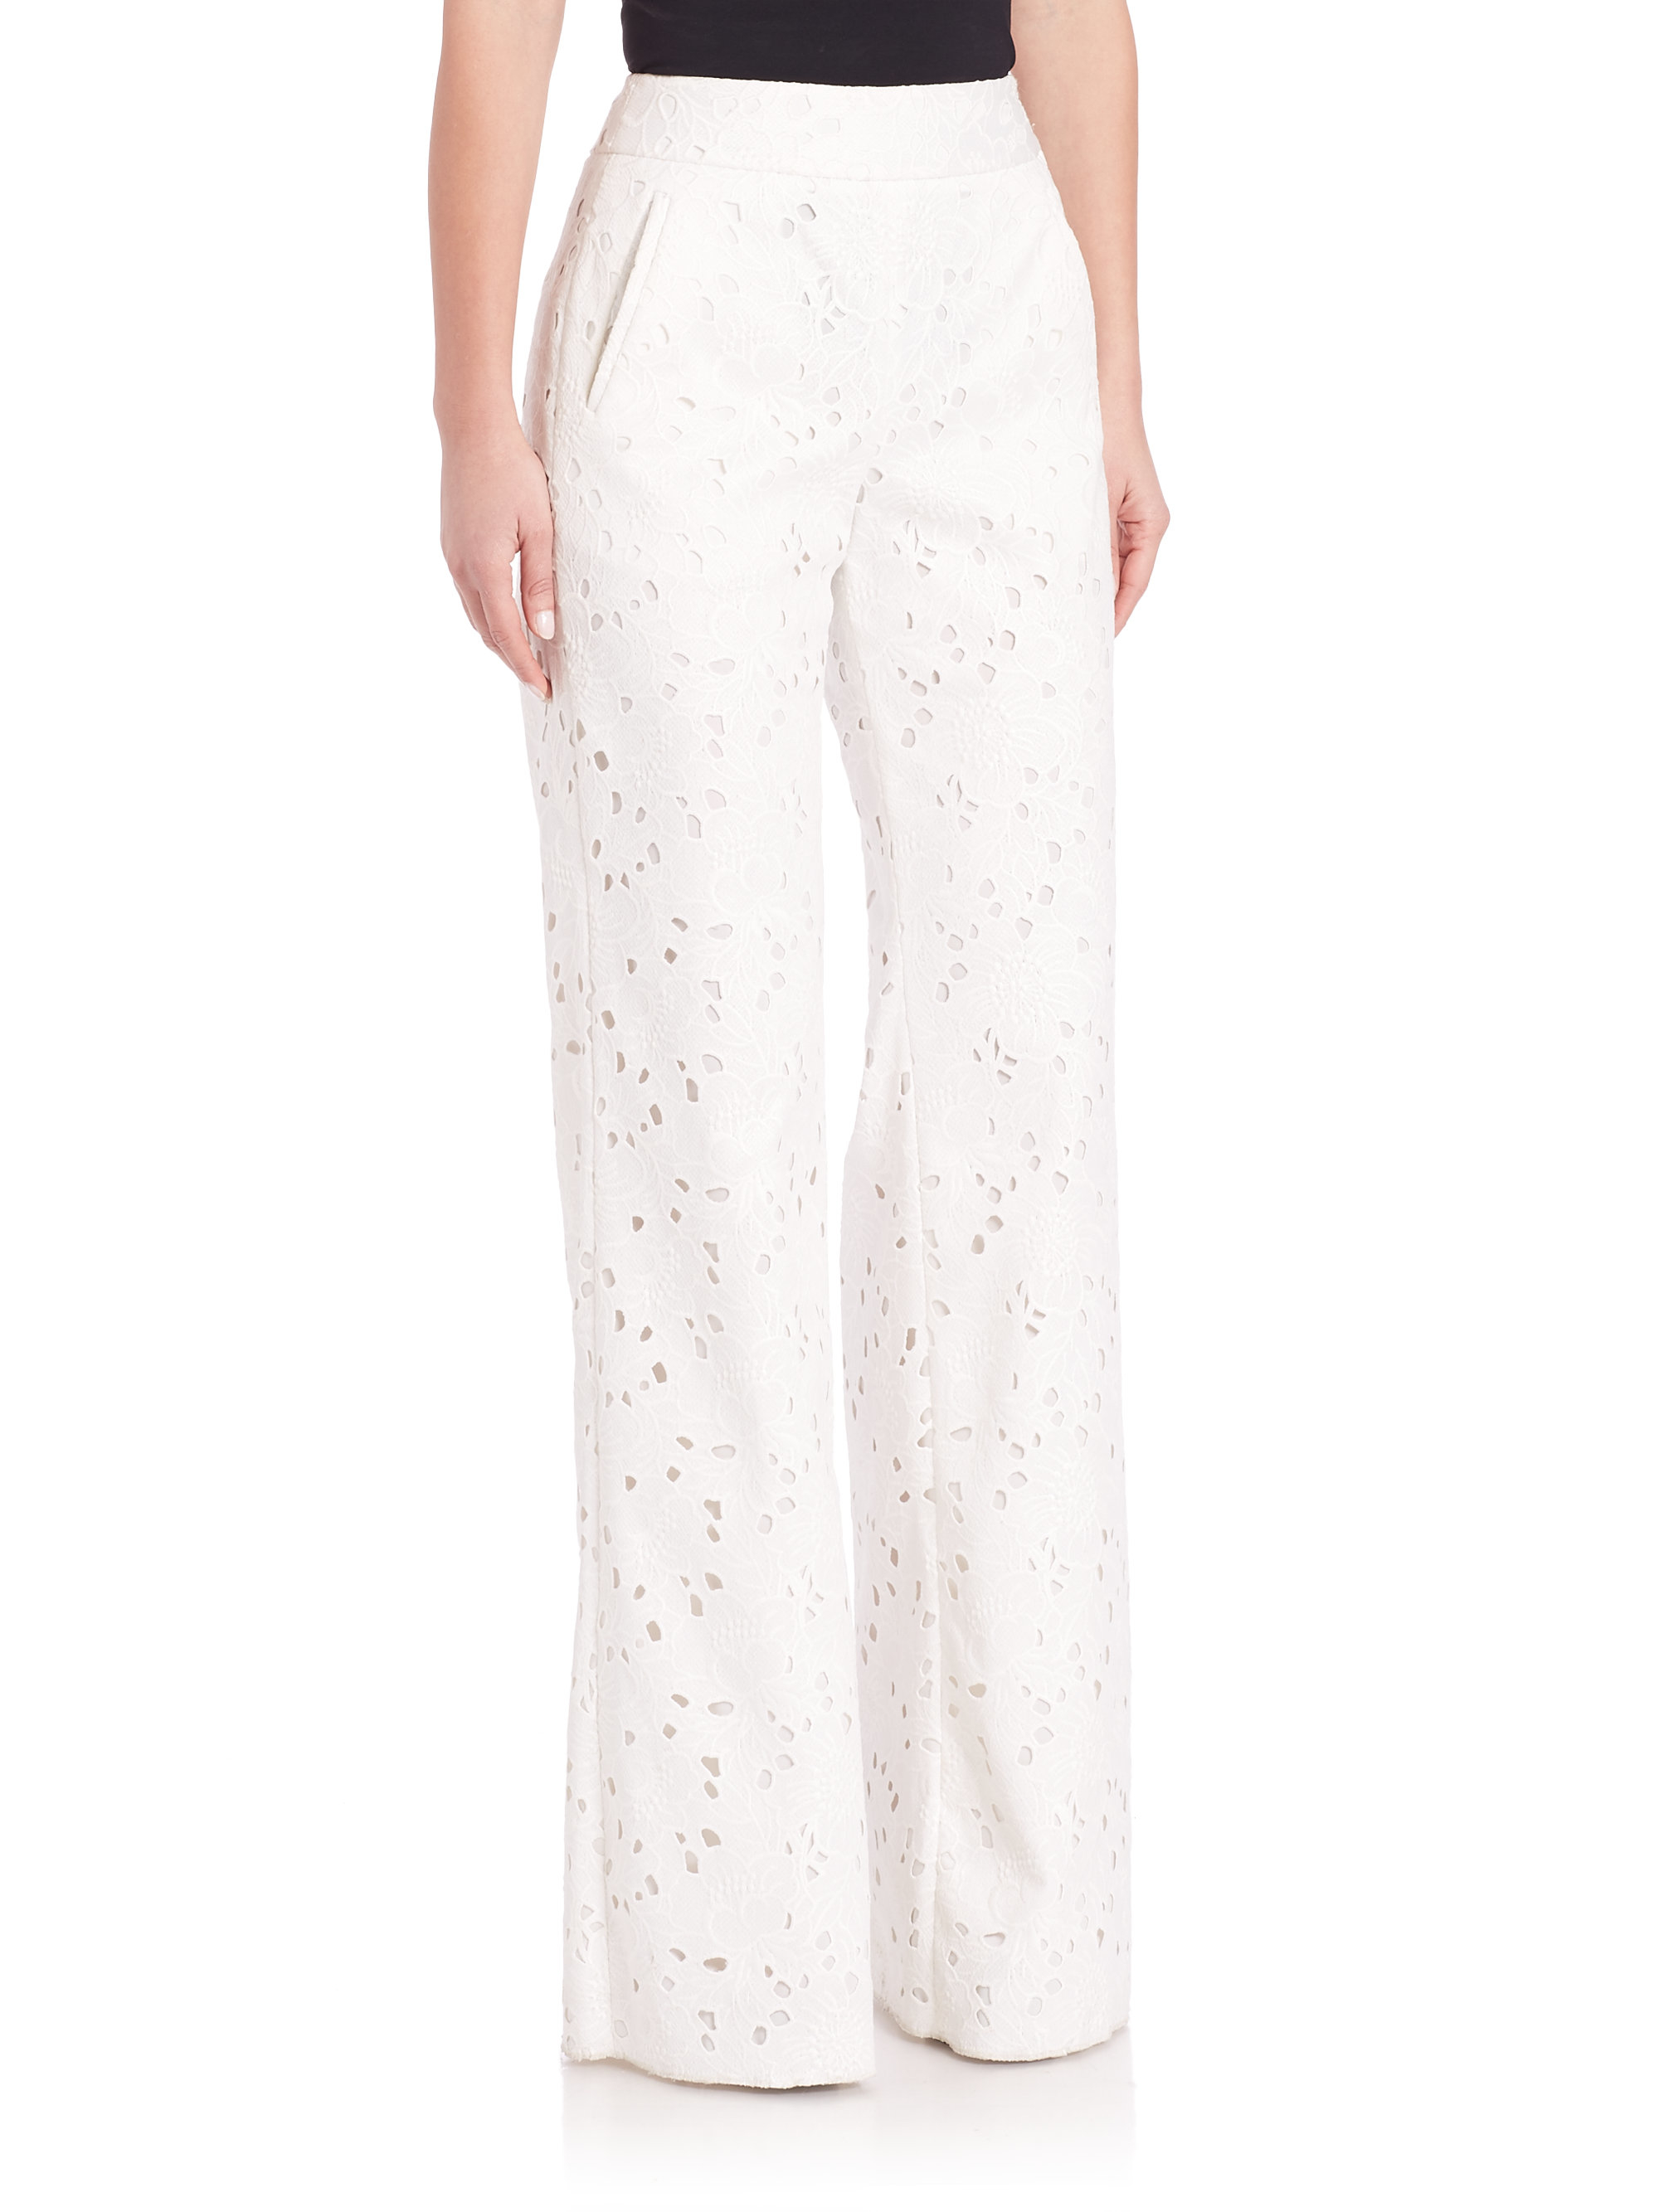 Sachin & babi Shabea Wide-leg Lace Pants in Natural | Lyst